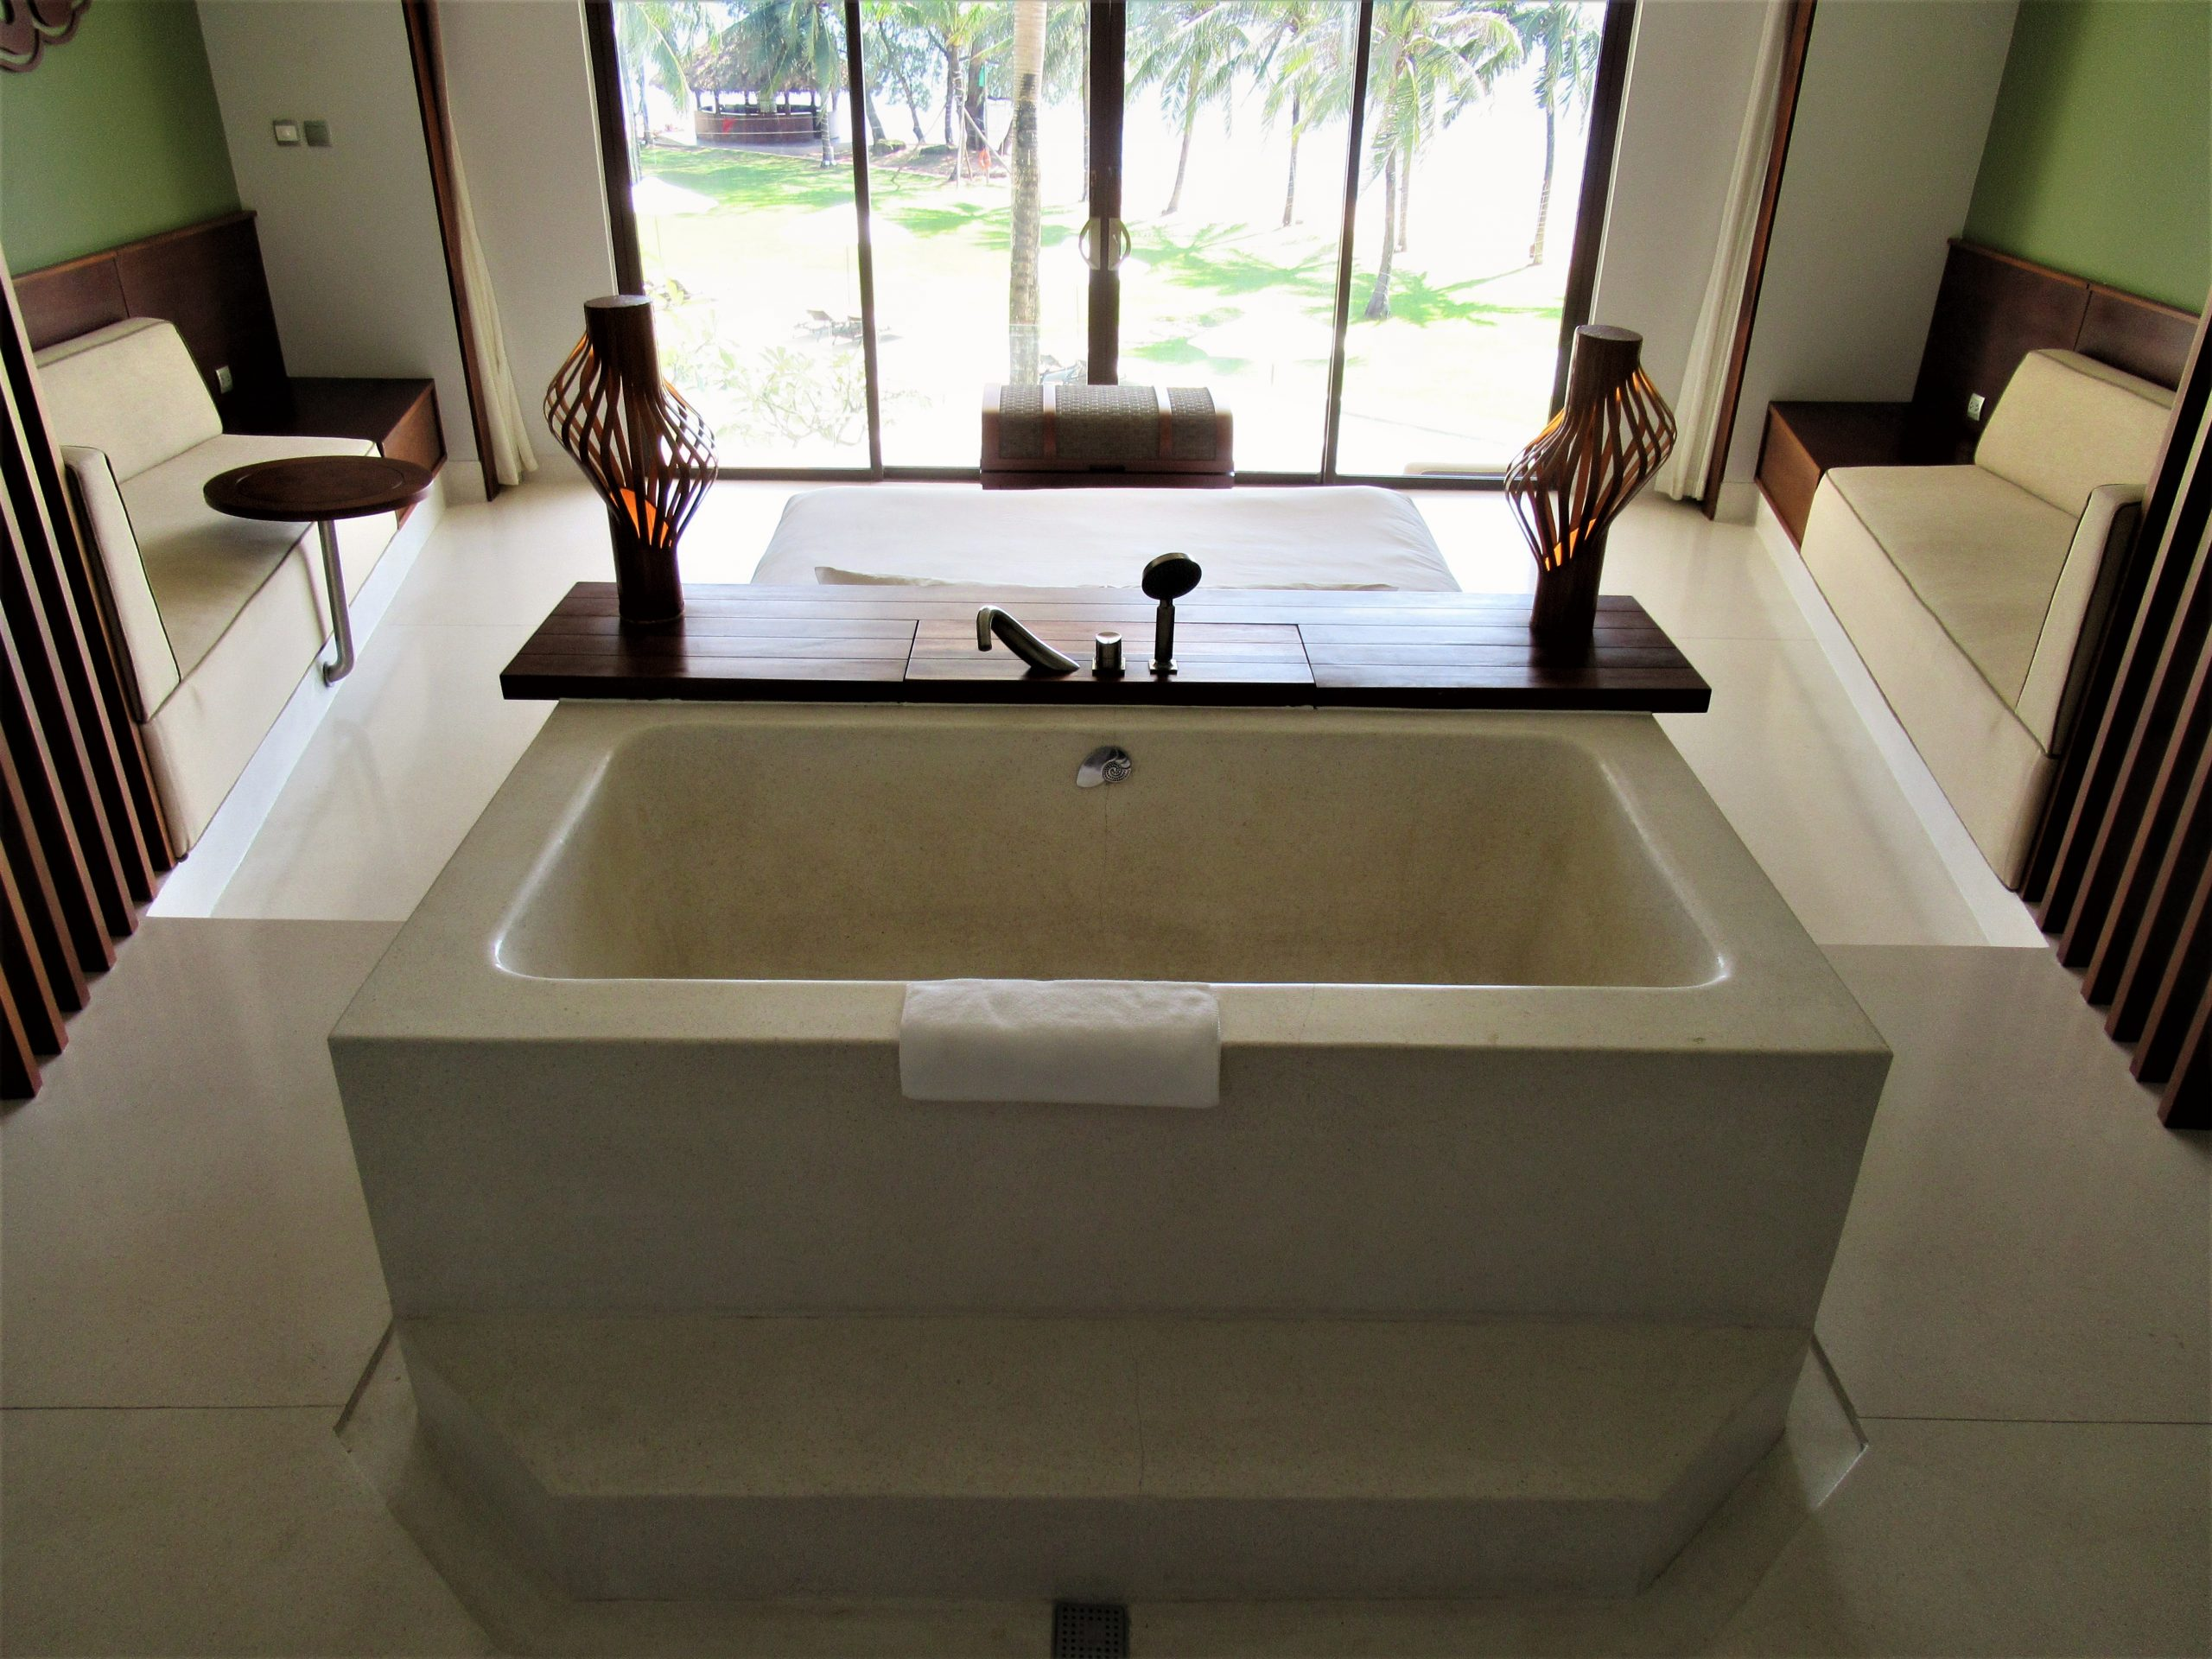 Bathtub in guest room, The Shells Resort, Phu Quoc Island, Vietnam